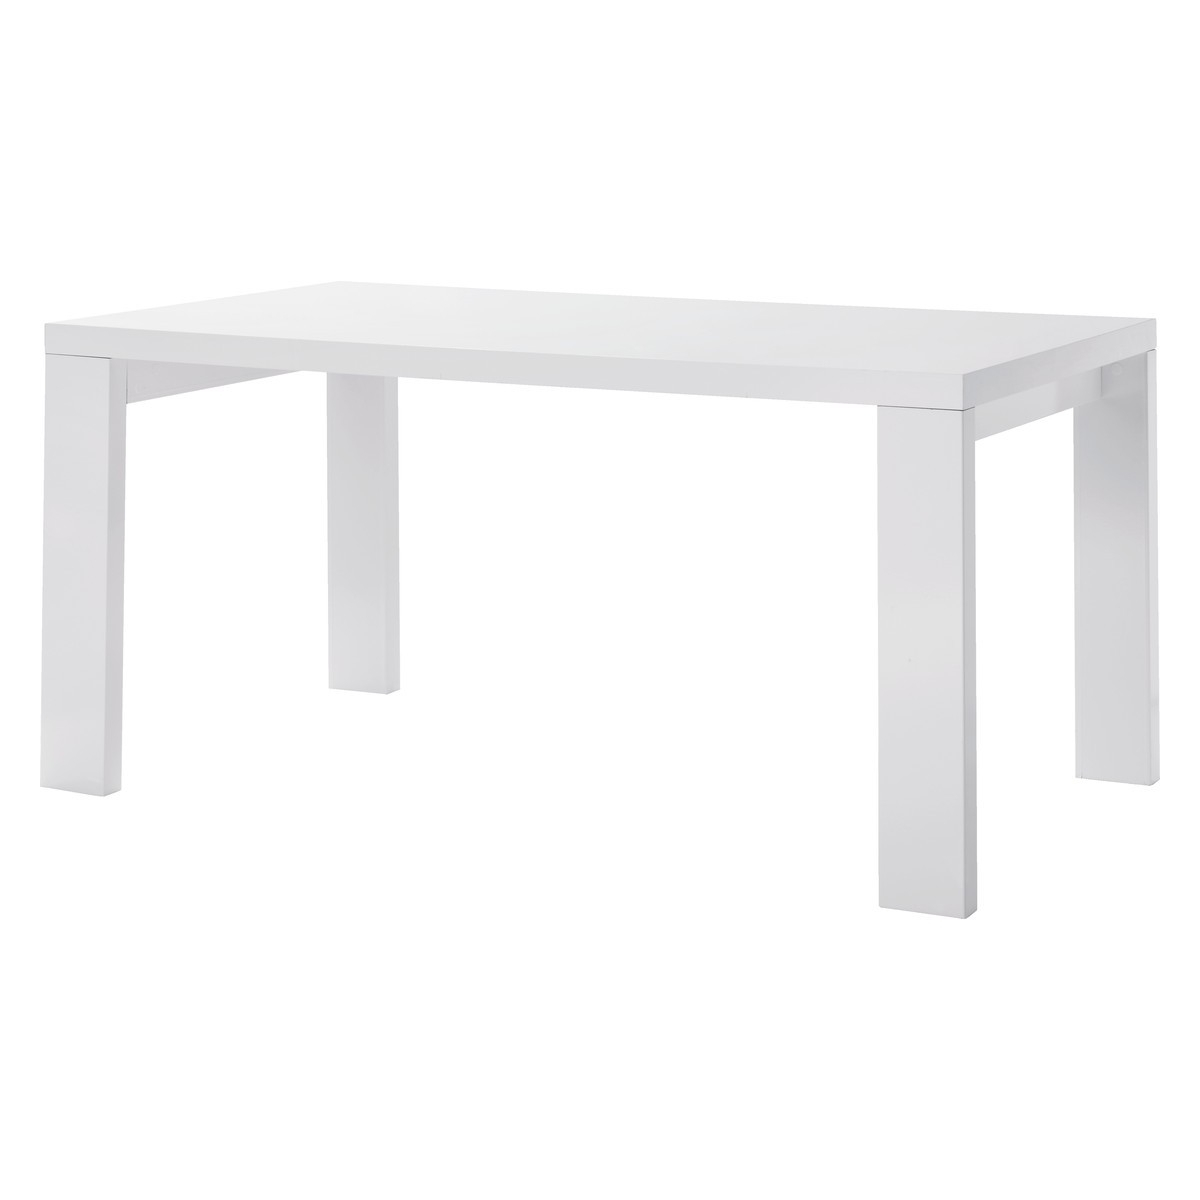 High Gloss Dining Tables Regarding Well Known Asper 6 Seat White High Gloss Dining Table (Gallery 8 of 25)